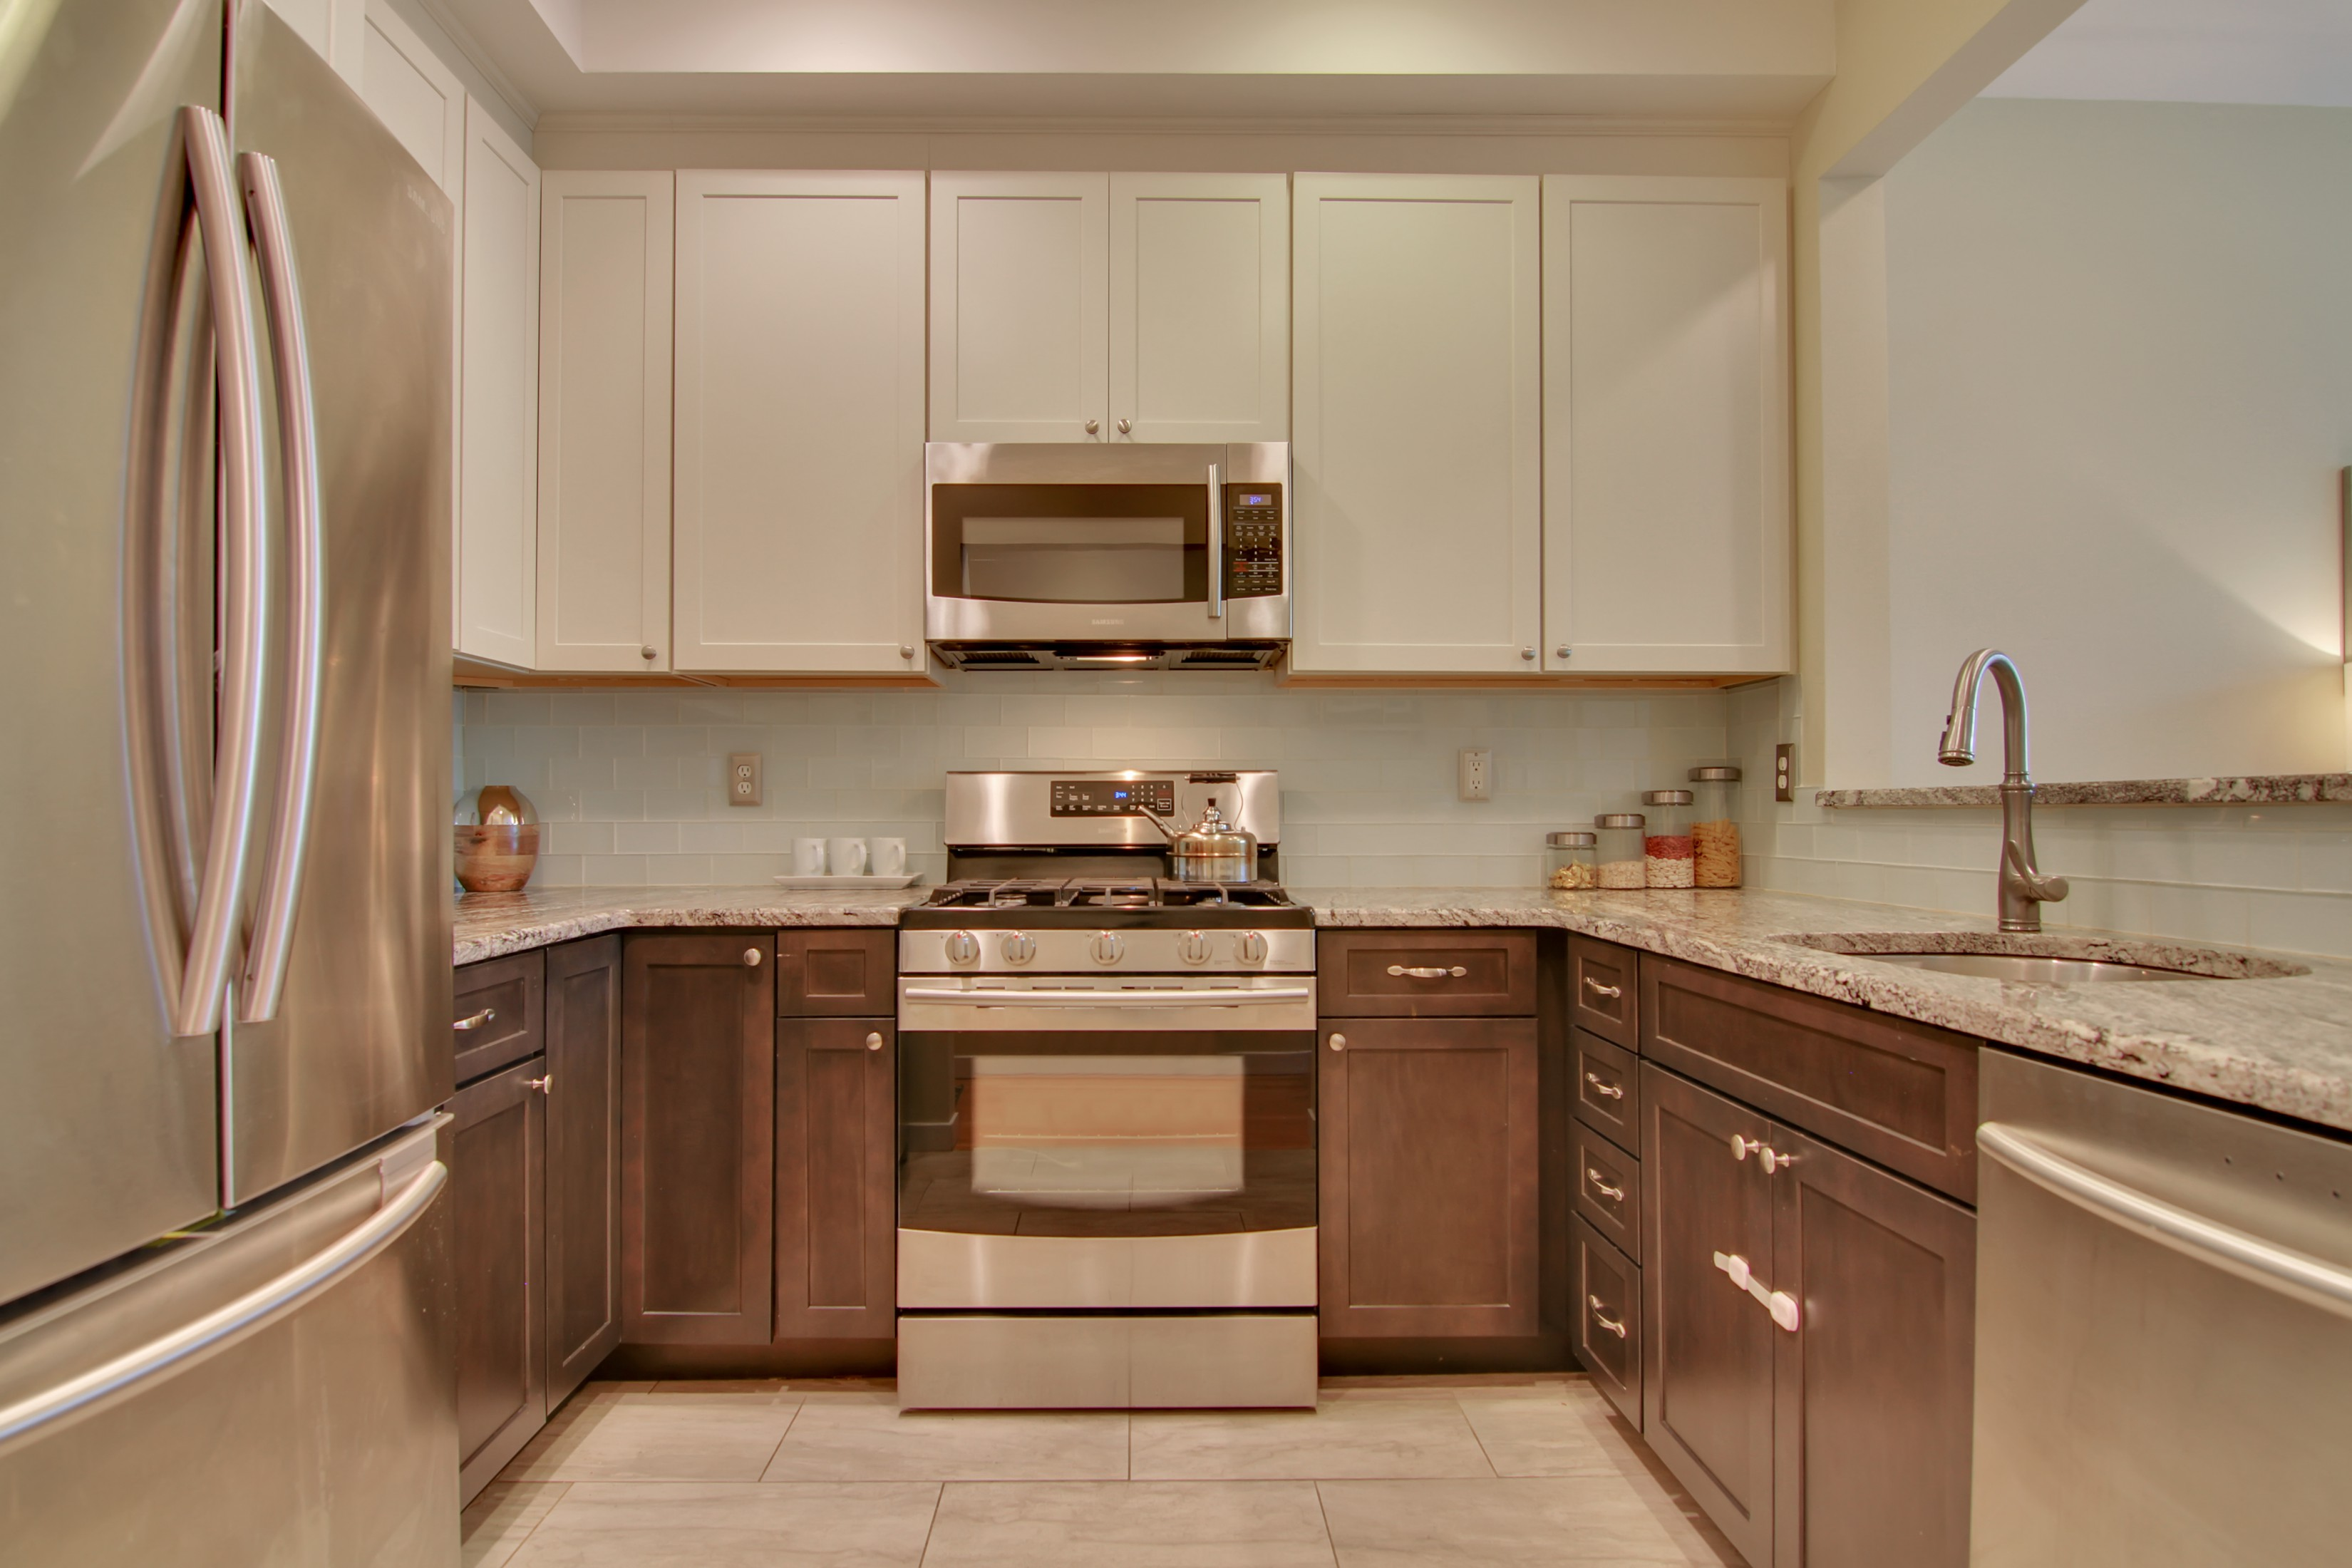 Townhouse for Sale at Four Story Townhouse 131 Jackson Street #B Hoboken, New Jersey, 07030 United States